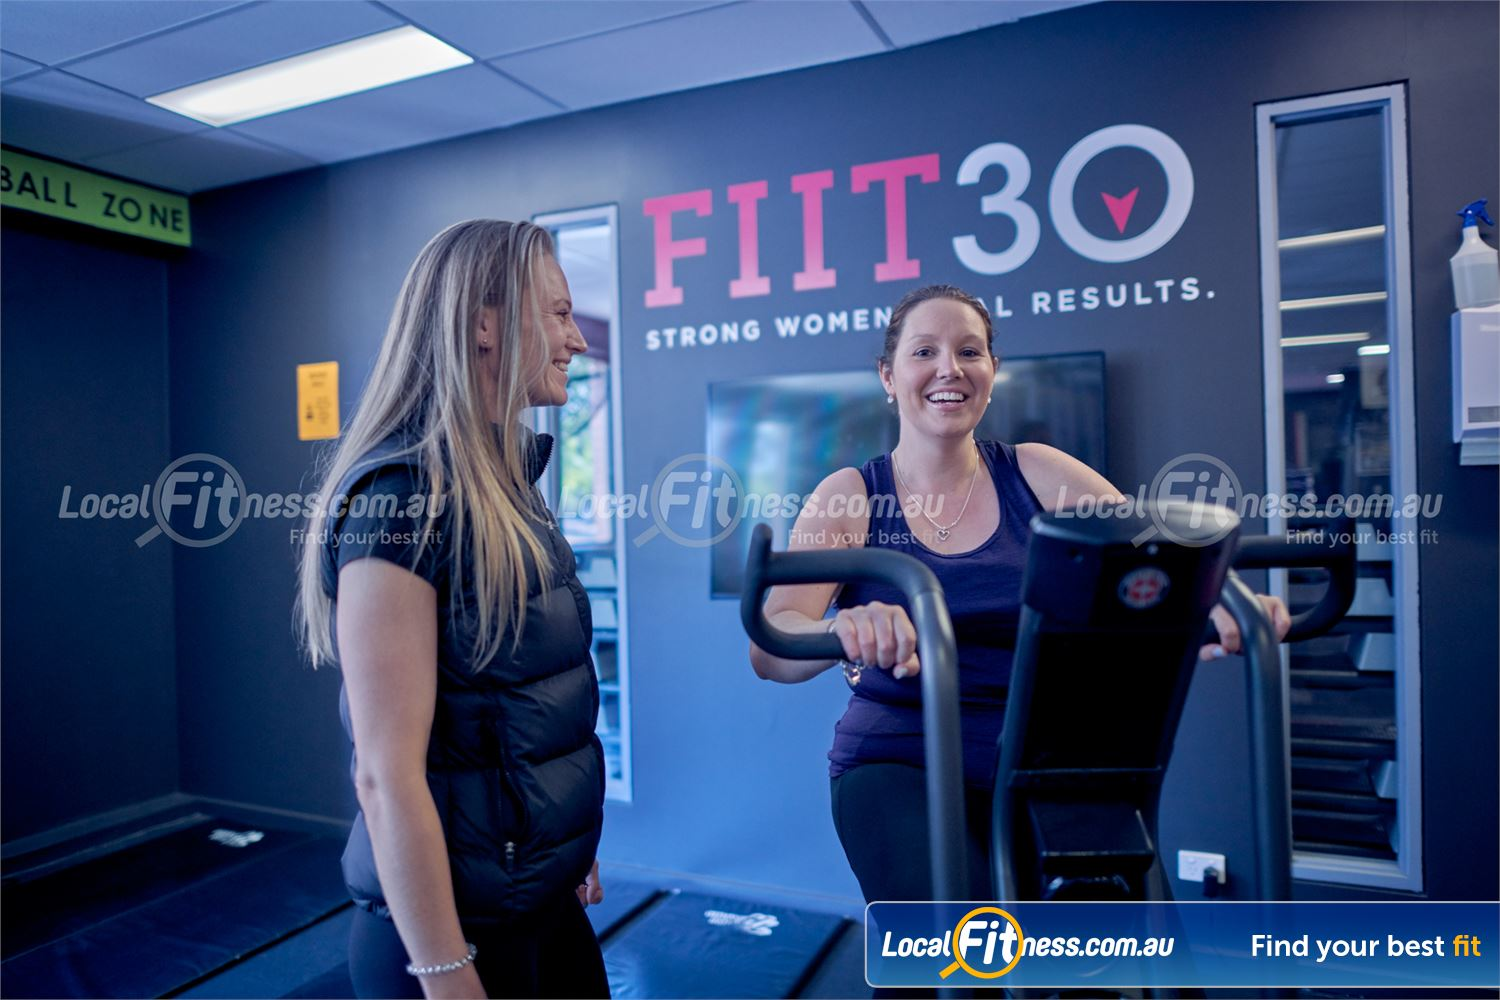 Fernwood Fitness Near Balaclava Join our FIIT30 program, HIIT-based functional training classes.